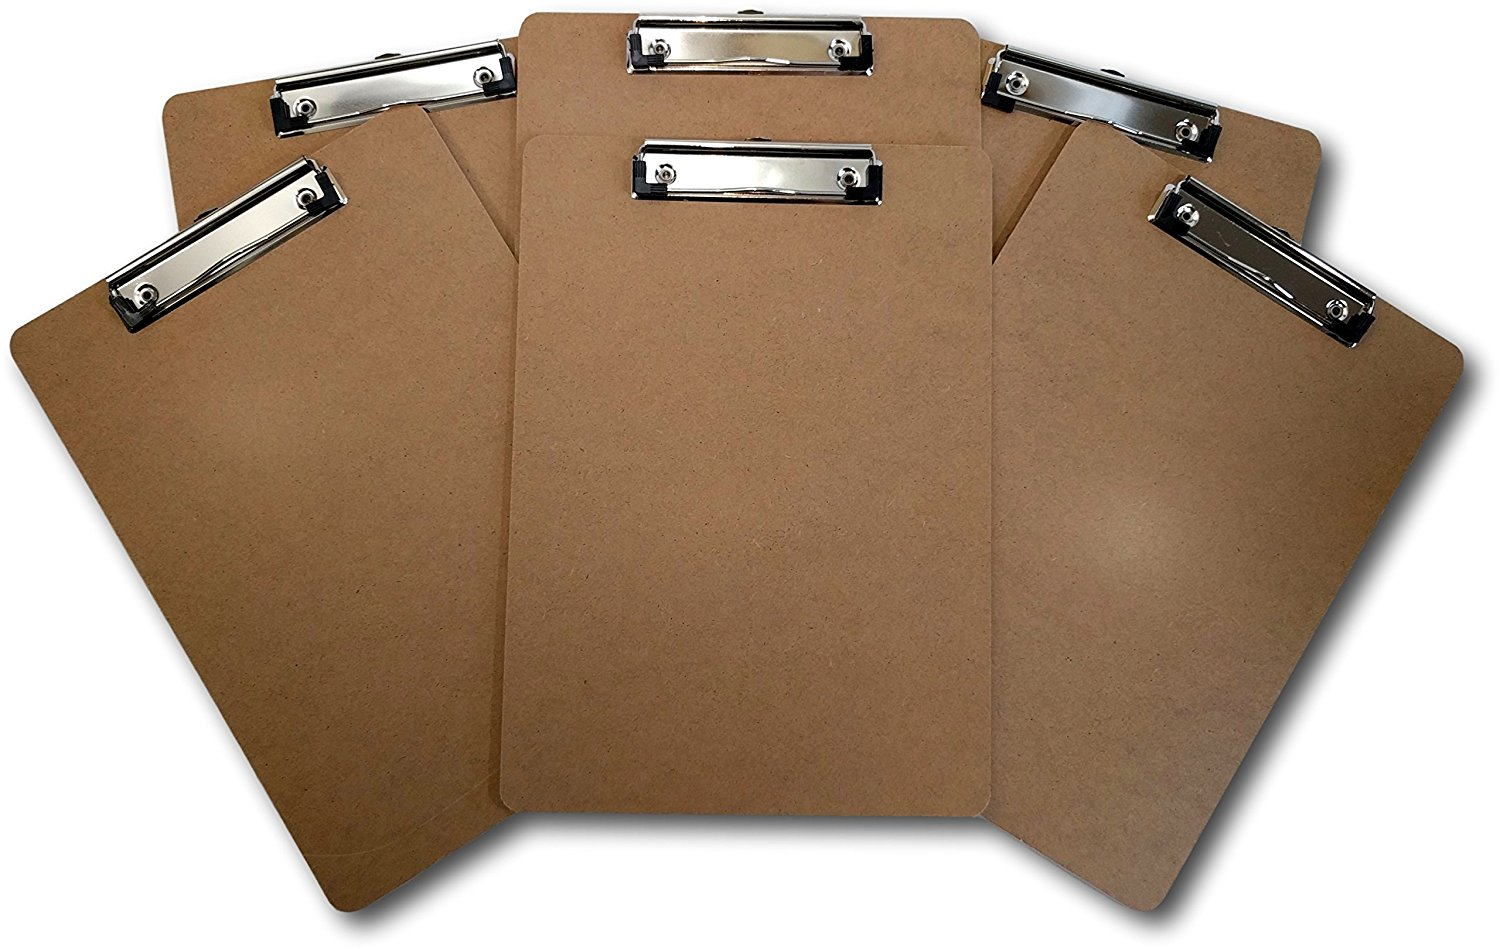 Hot Sale popular high quality custom various design Letter Size Clipboard Standard Clip 9'' x 12.5'' Hardboard (Pack of 6)